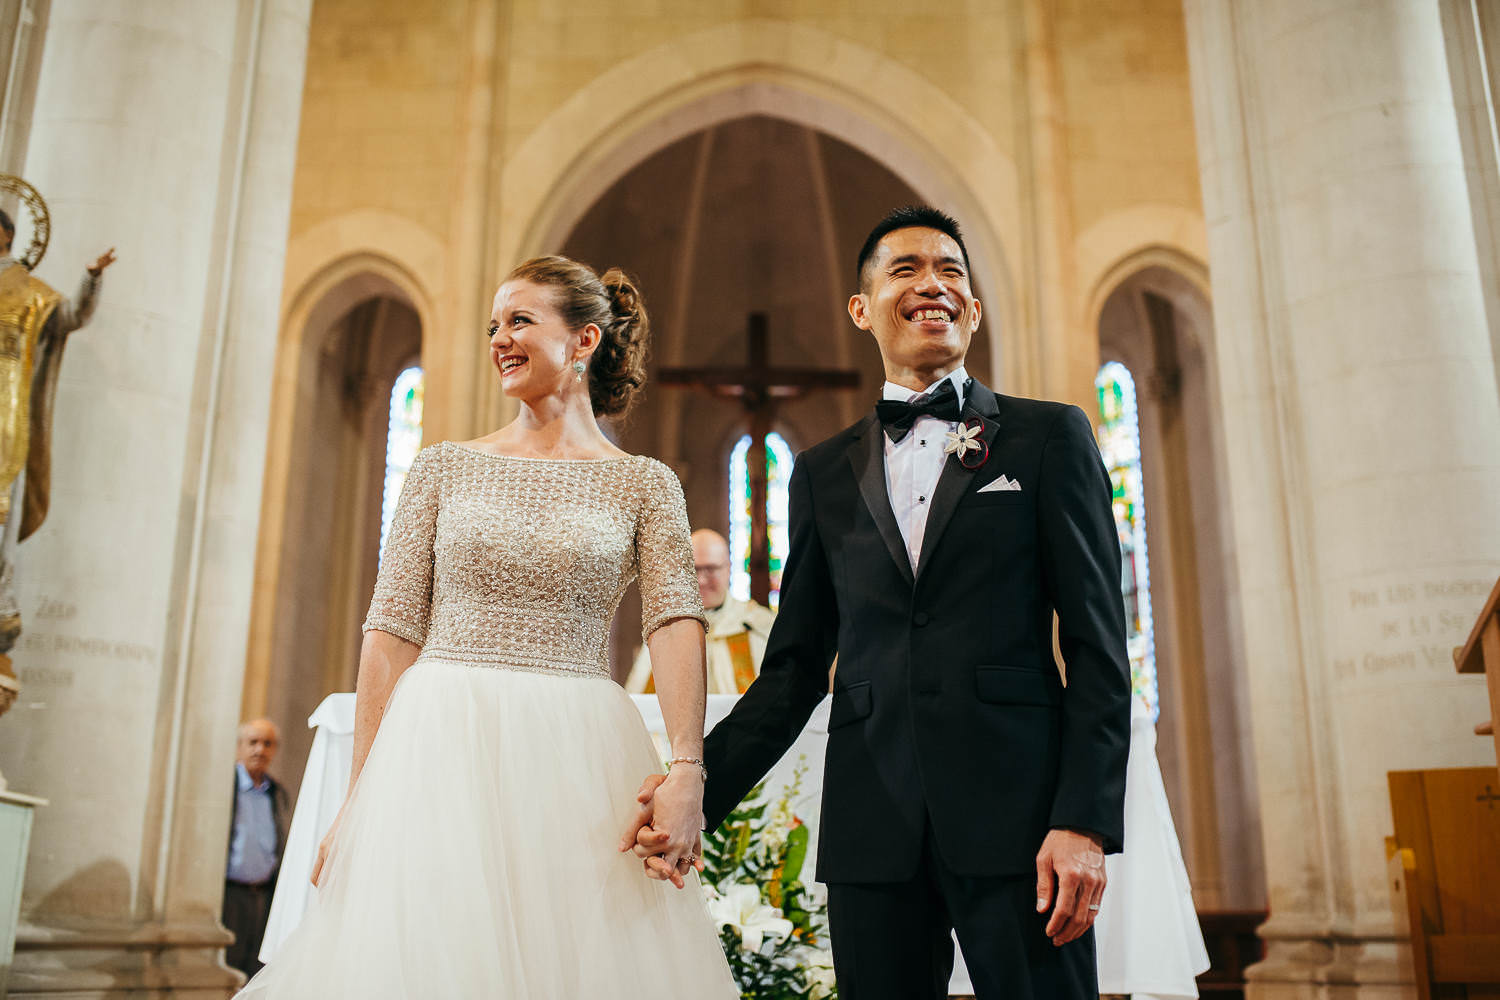 Wedding photographer Barcelona Tibidabo Church